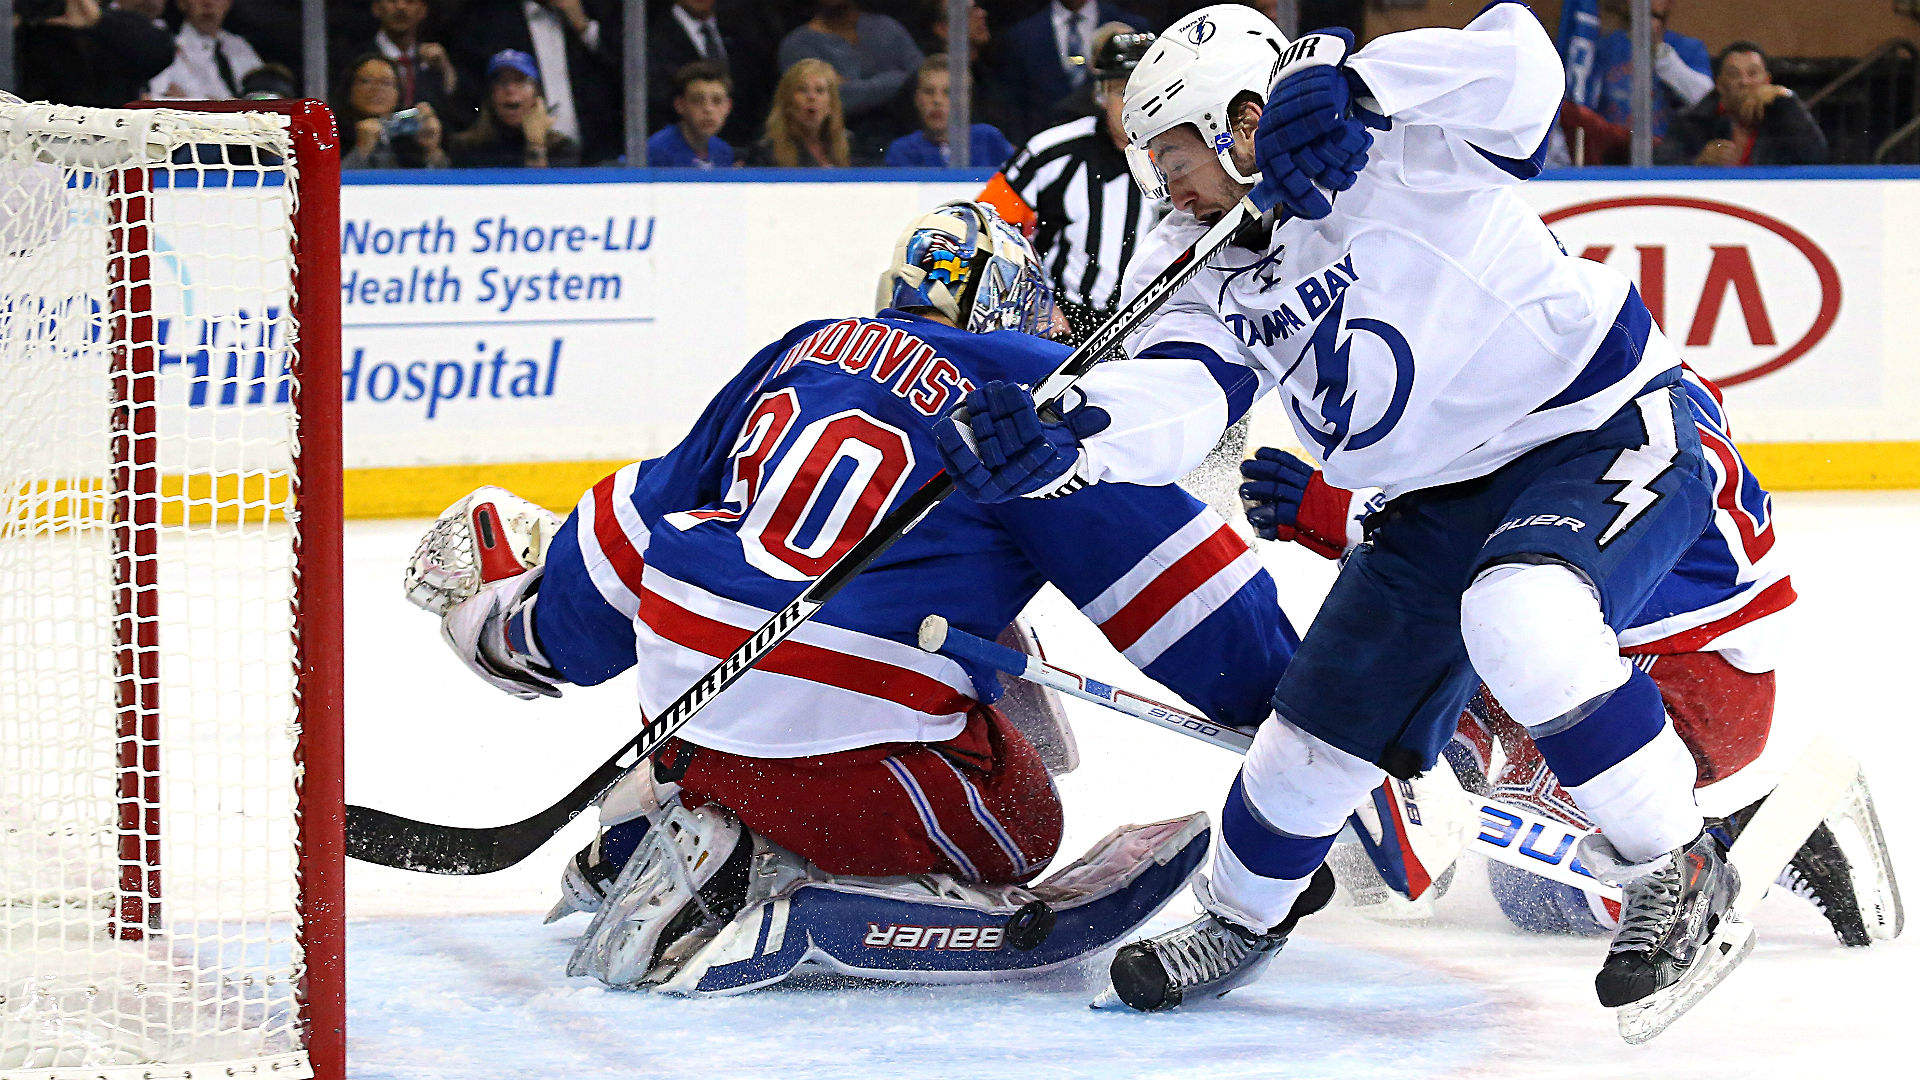 Rangers vs. Lightning Game 3 odds and betting analysis – Total rises after offensive outburst